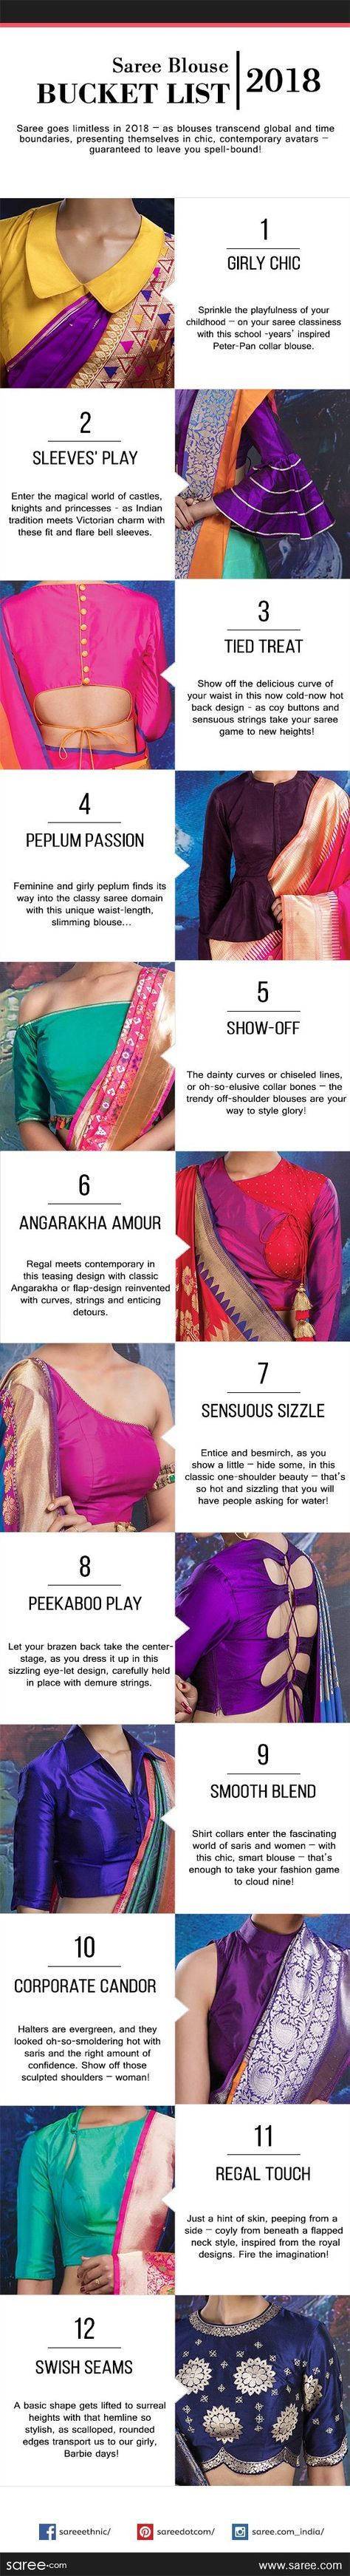 Saree blouse design sleeve blouse designs and patterns bucket list for  infographic